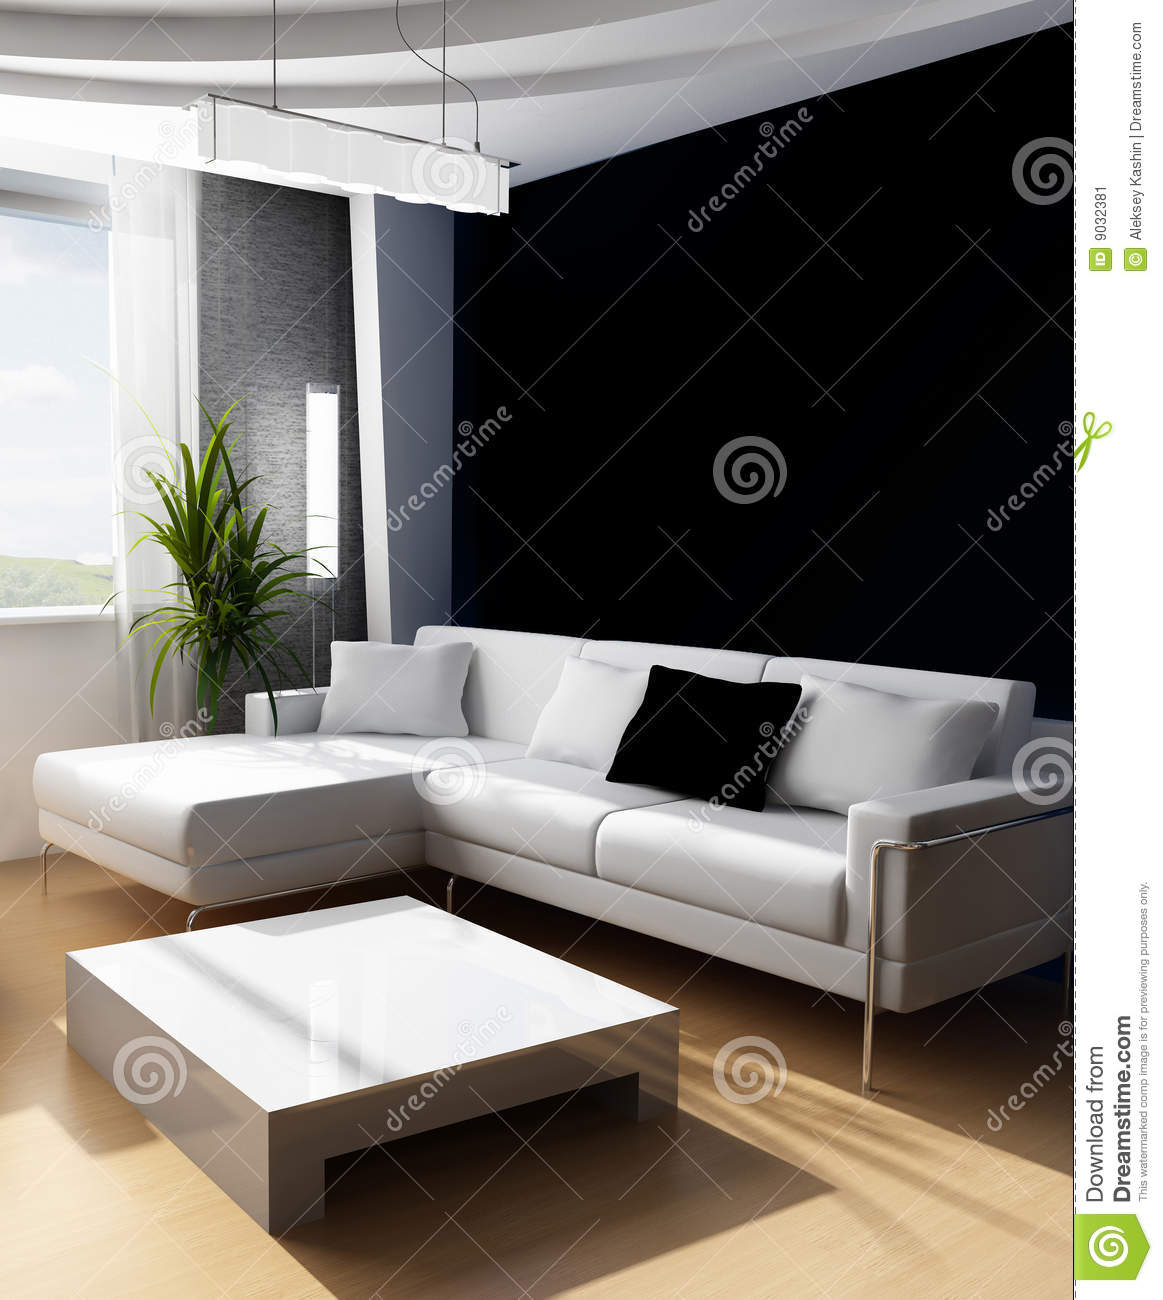 Drawing room 3d stock image image 9032381 for 3d bedroom drawing